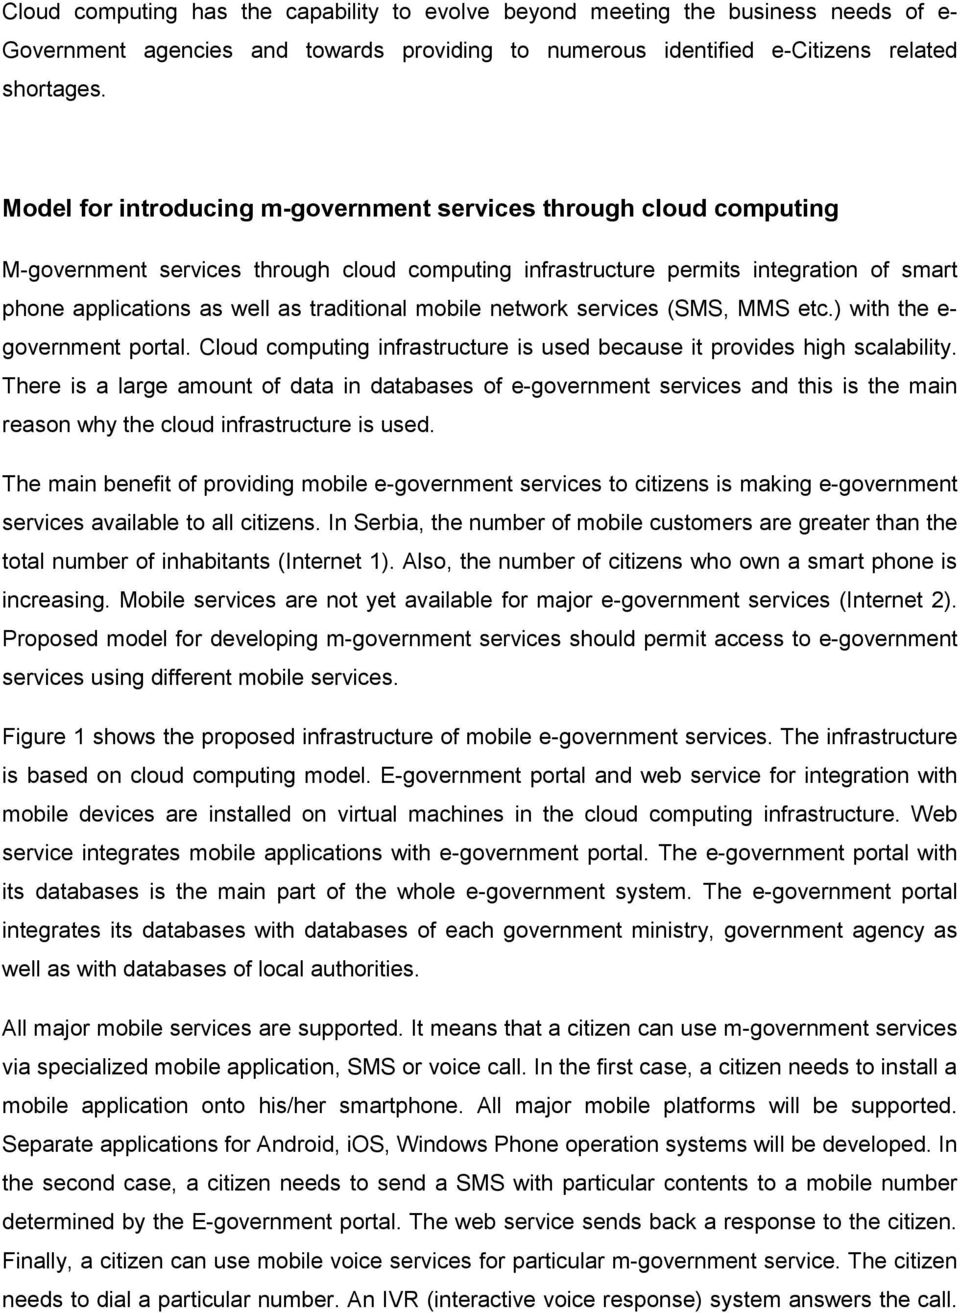 mobile network services (SMS, MMS etc.) with the e- government portal. Cloud computing infrastructure is used because it provides high scalability.